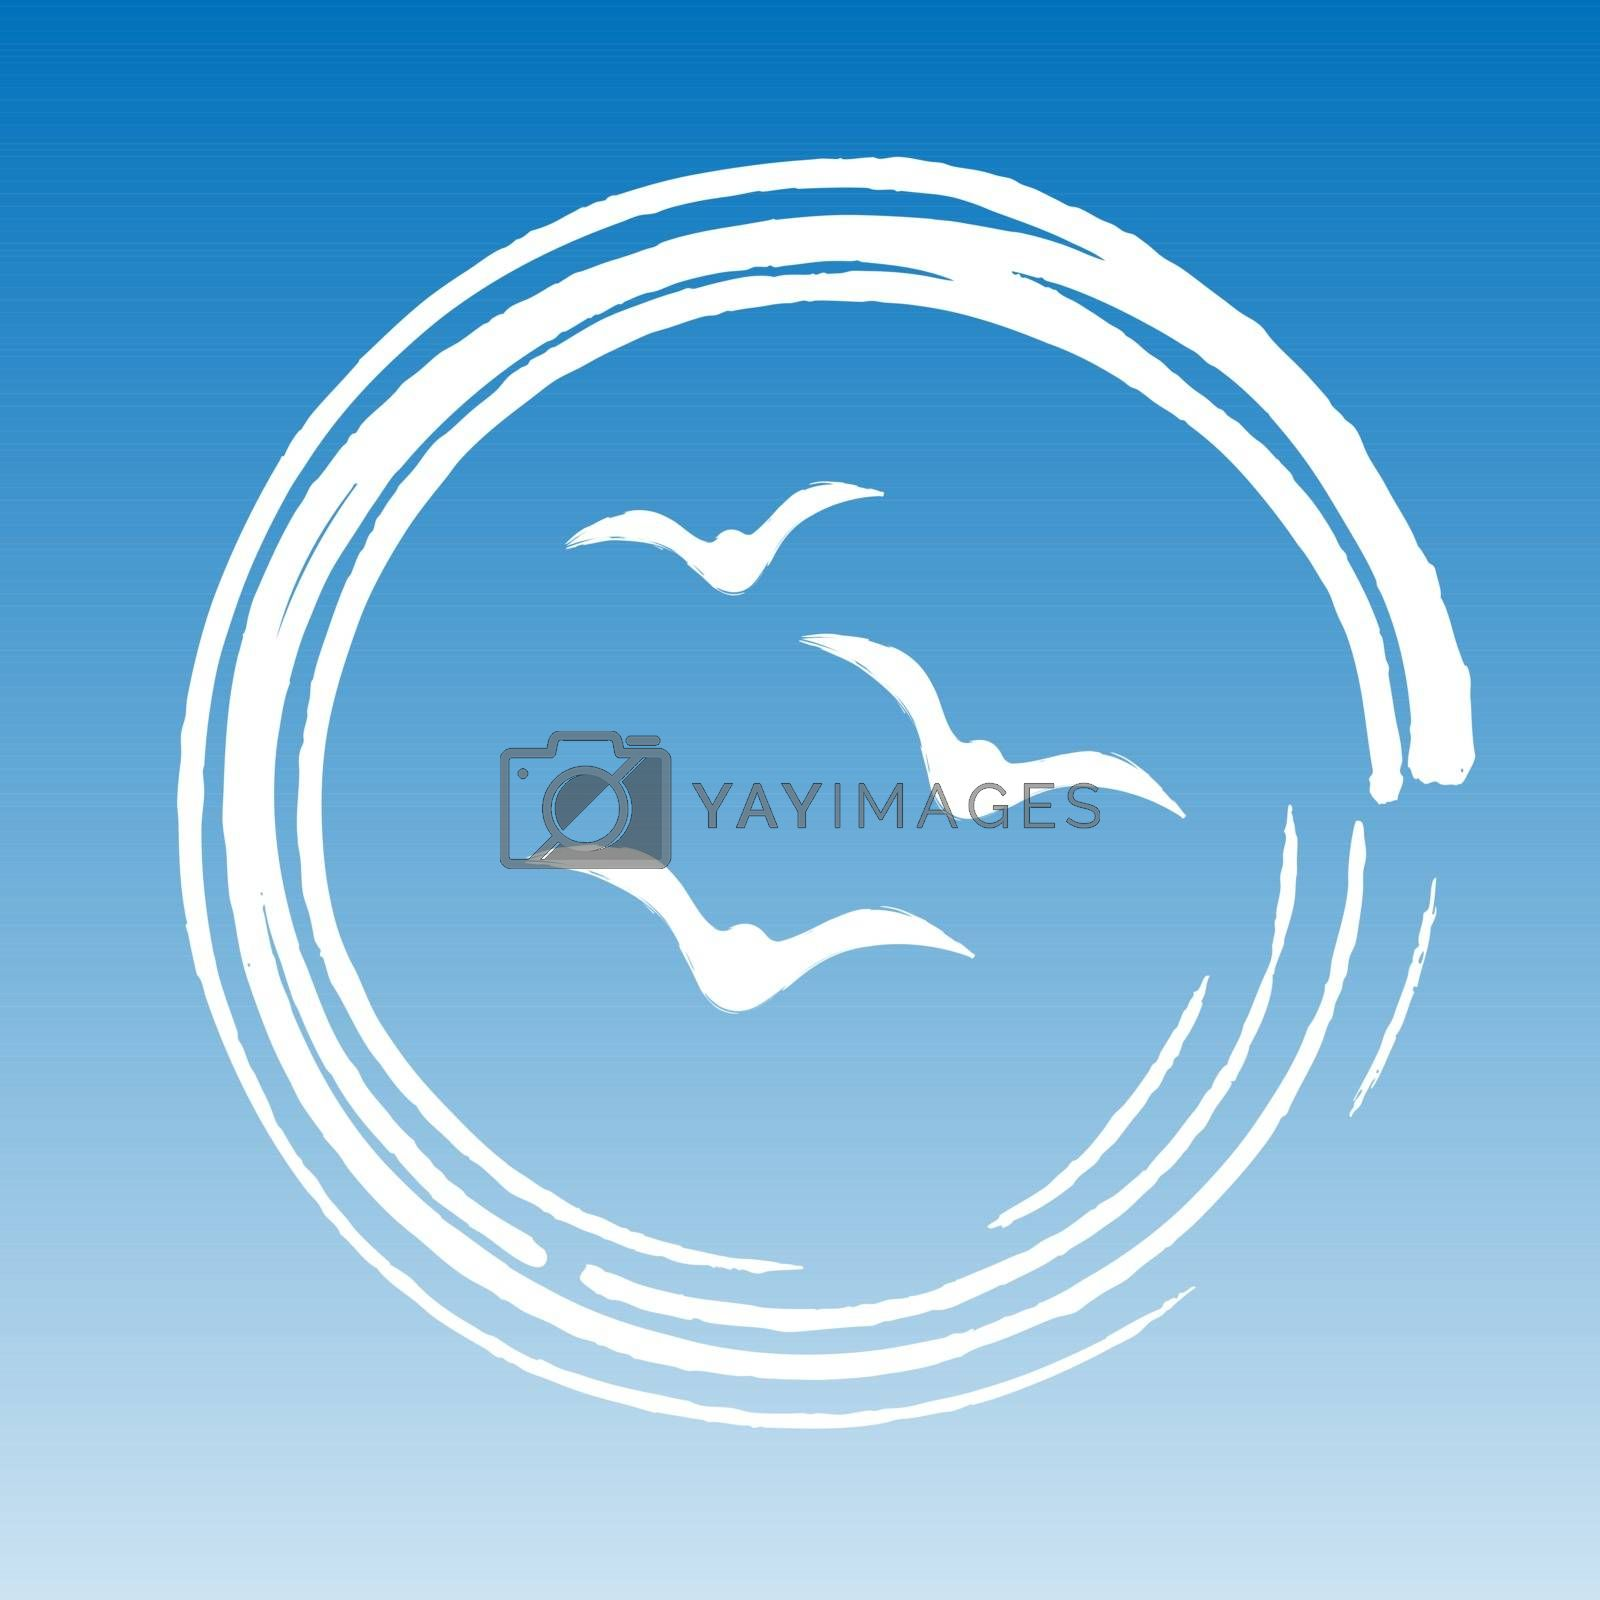 Three white birds seagulls or doves in white water circle on sky background